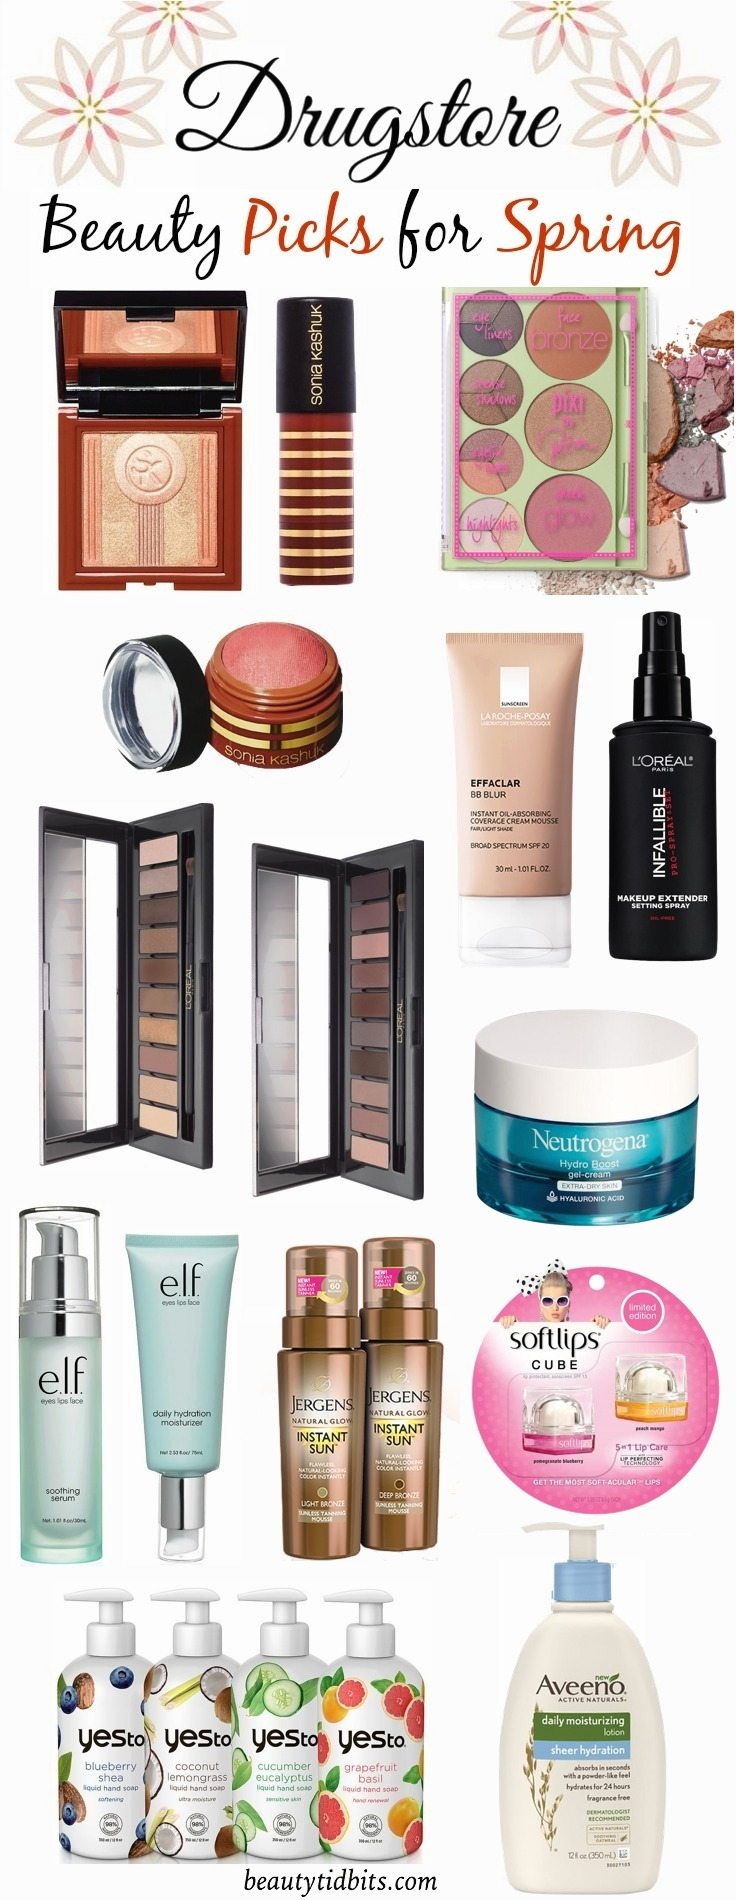 Drugstore beauty picks for Spring 2015